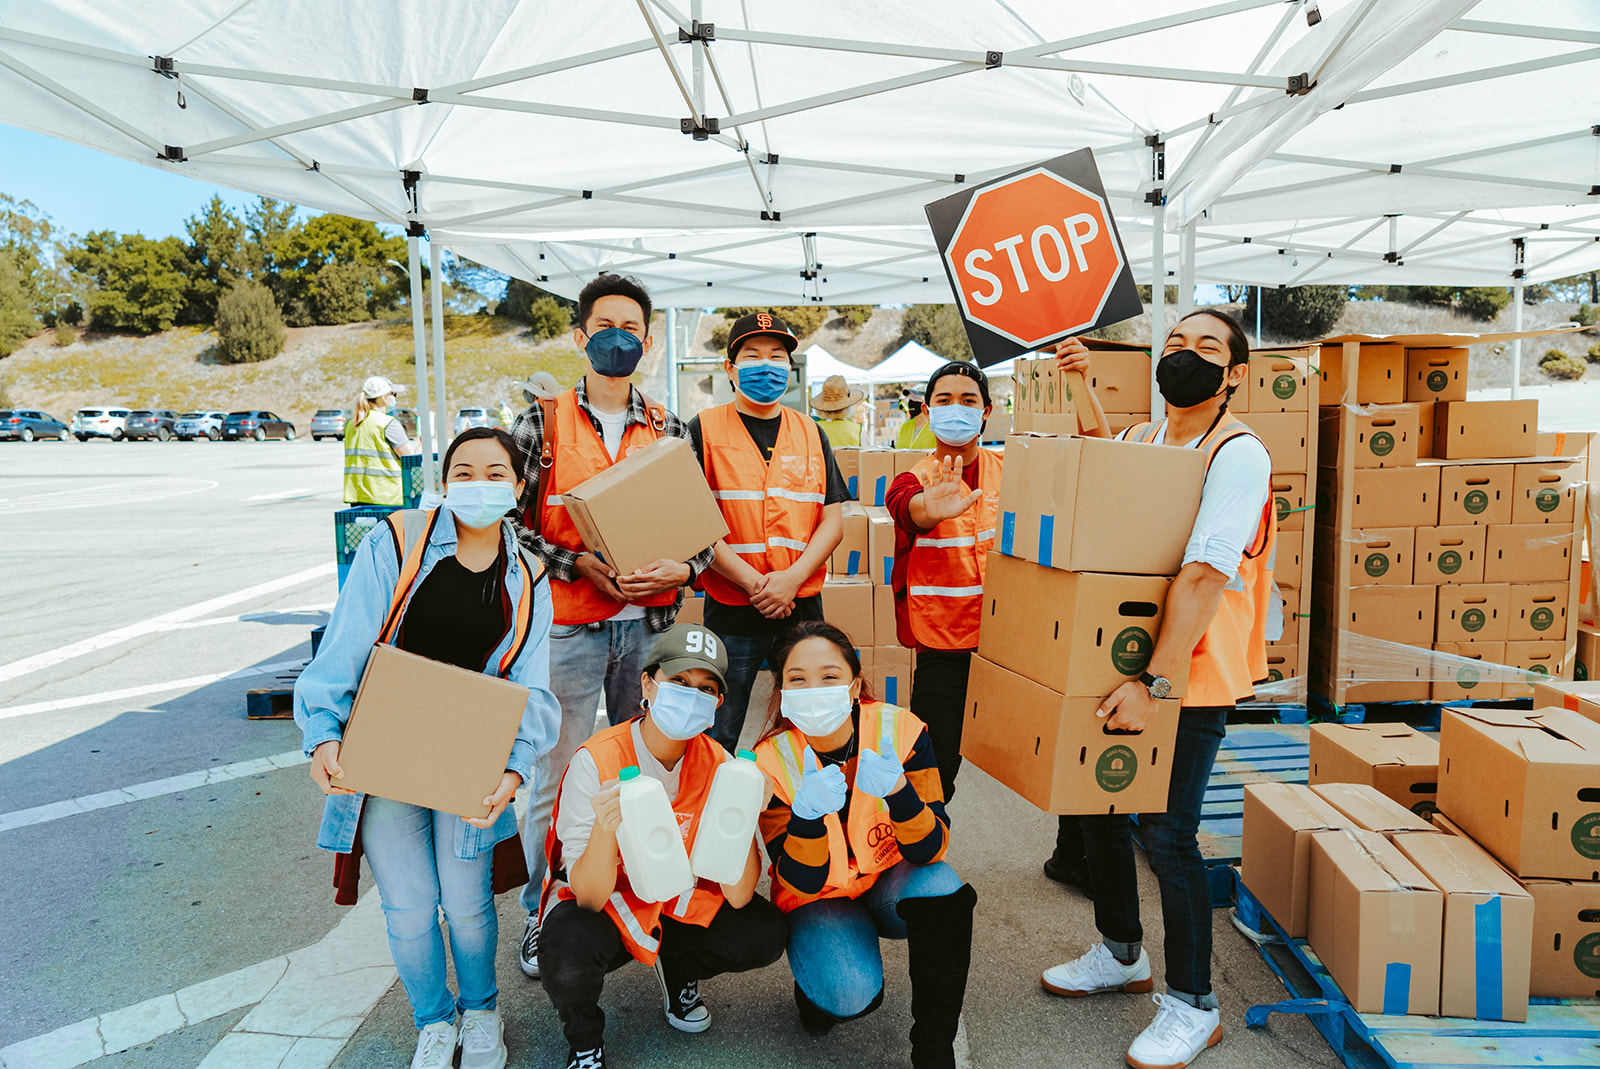 In this image, the Belugabee team are wearing medical masks and orange jackets. They are holding stop signs and cardboard boxes.